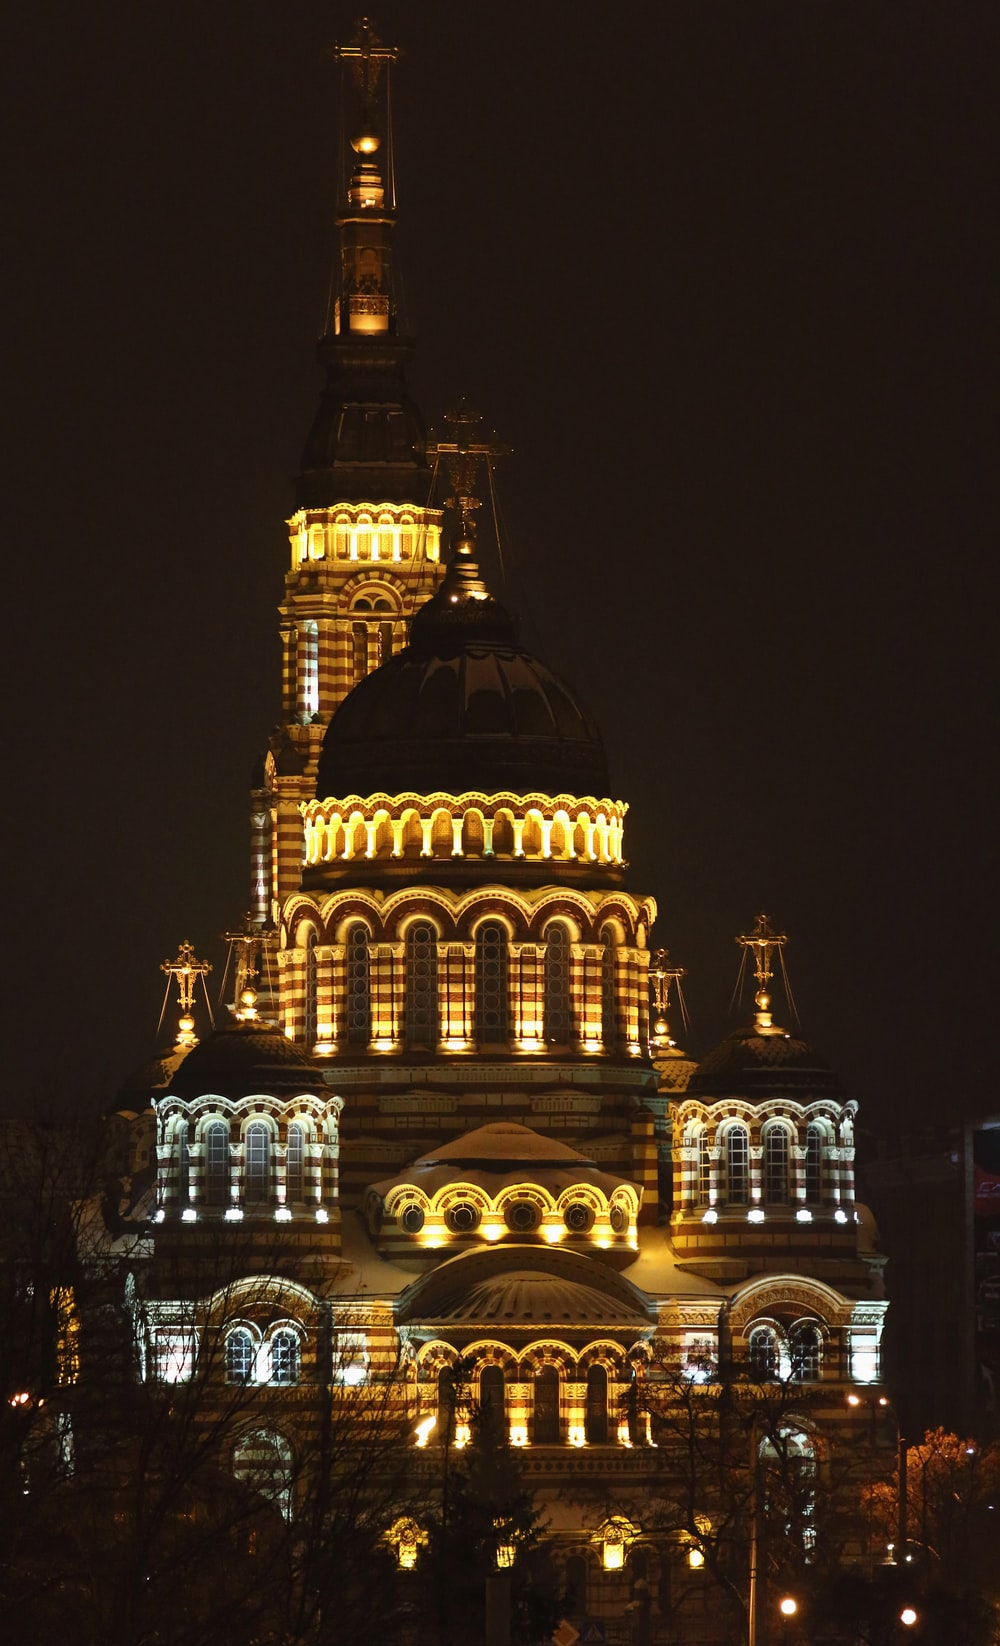 gold building during nighttime